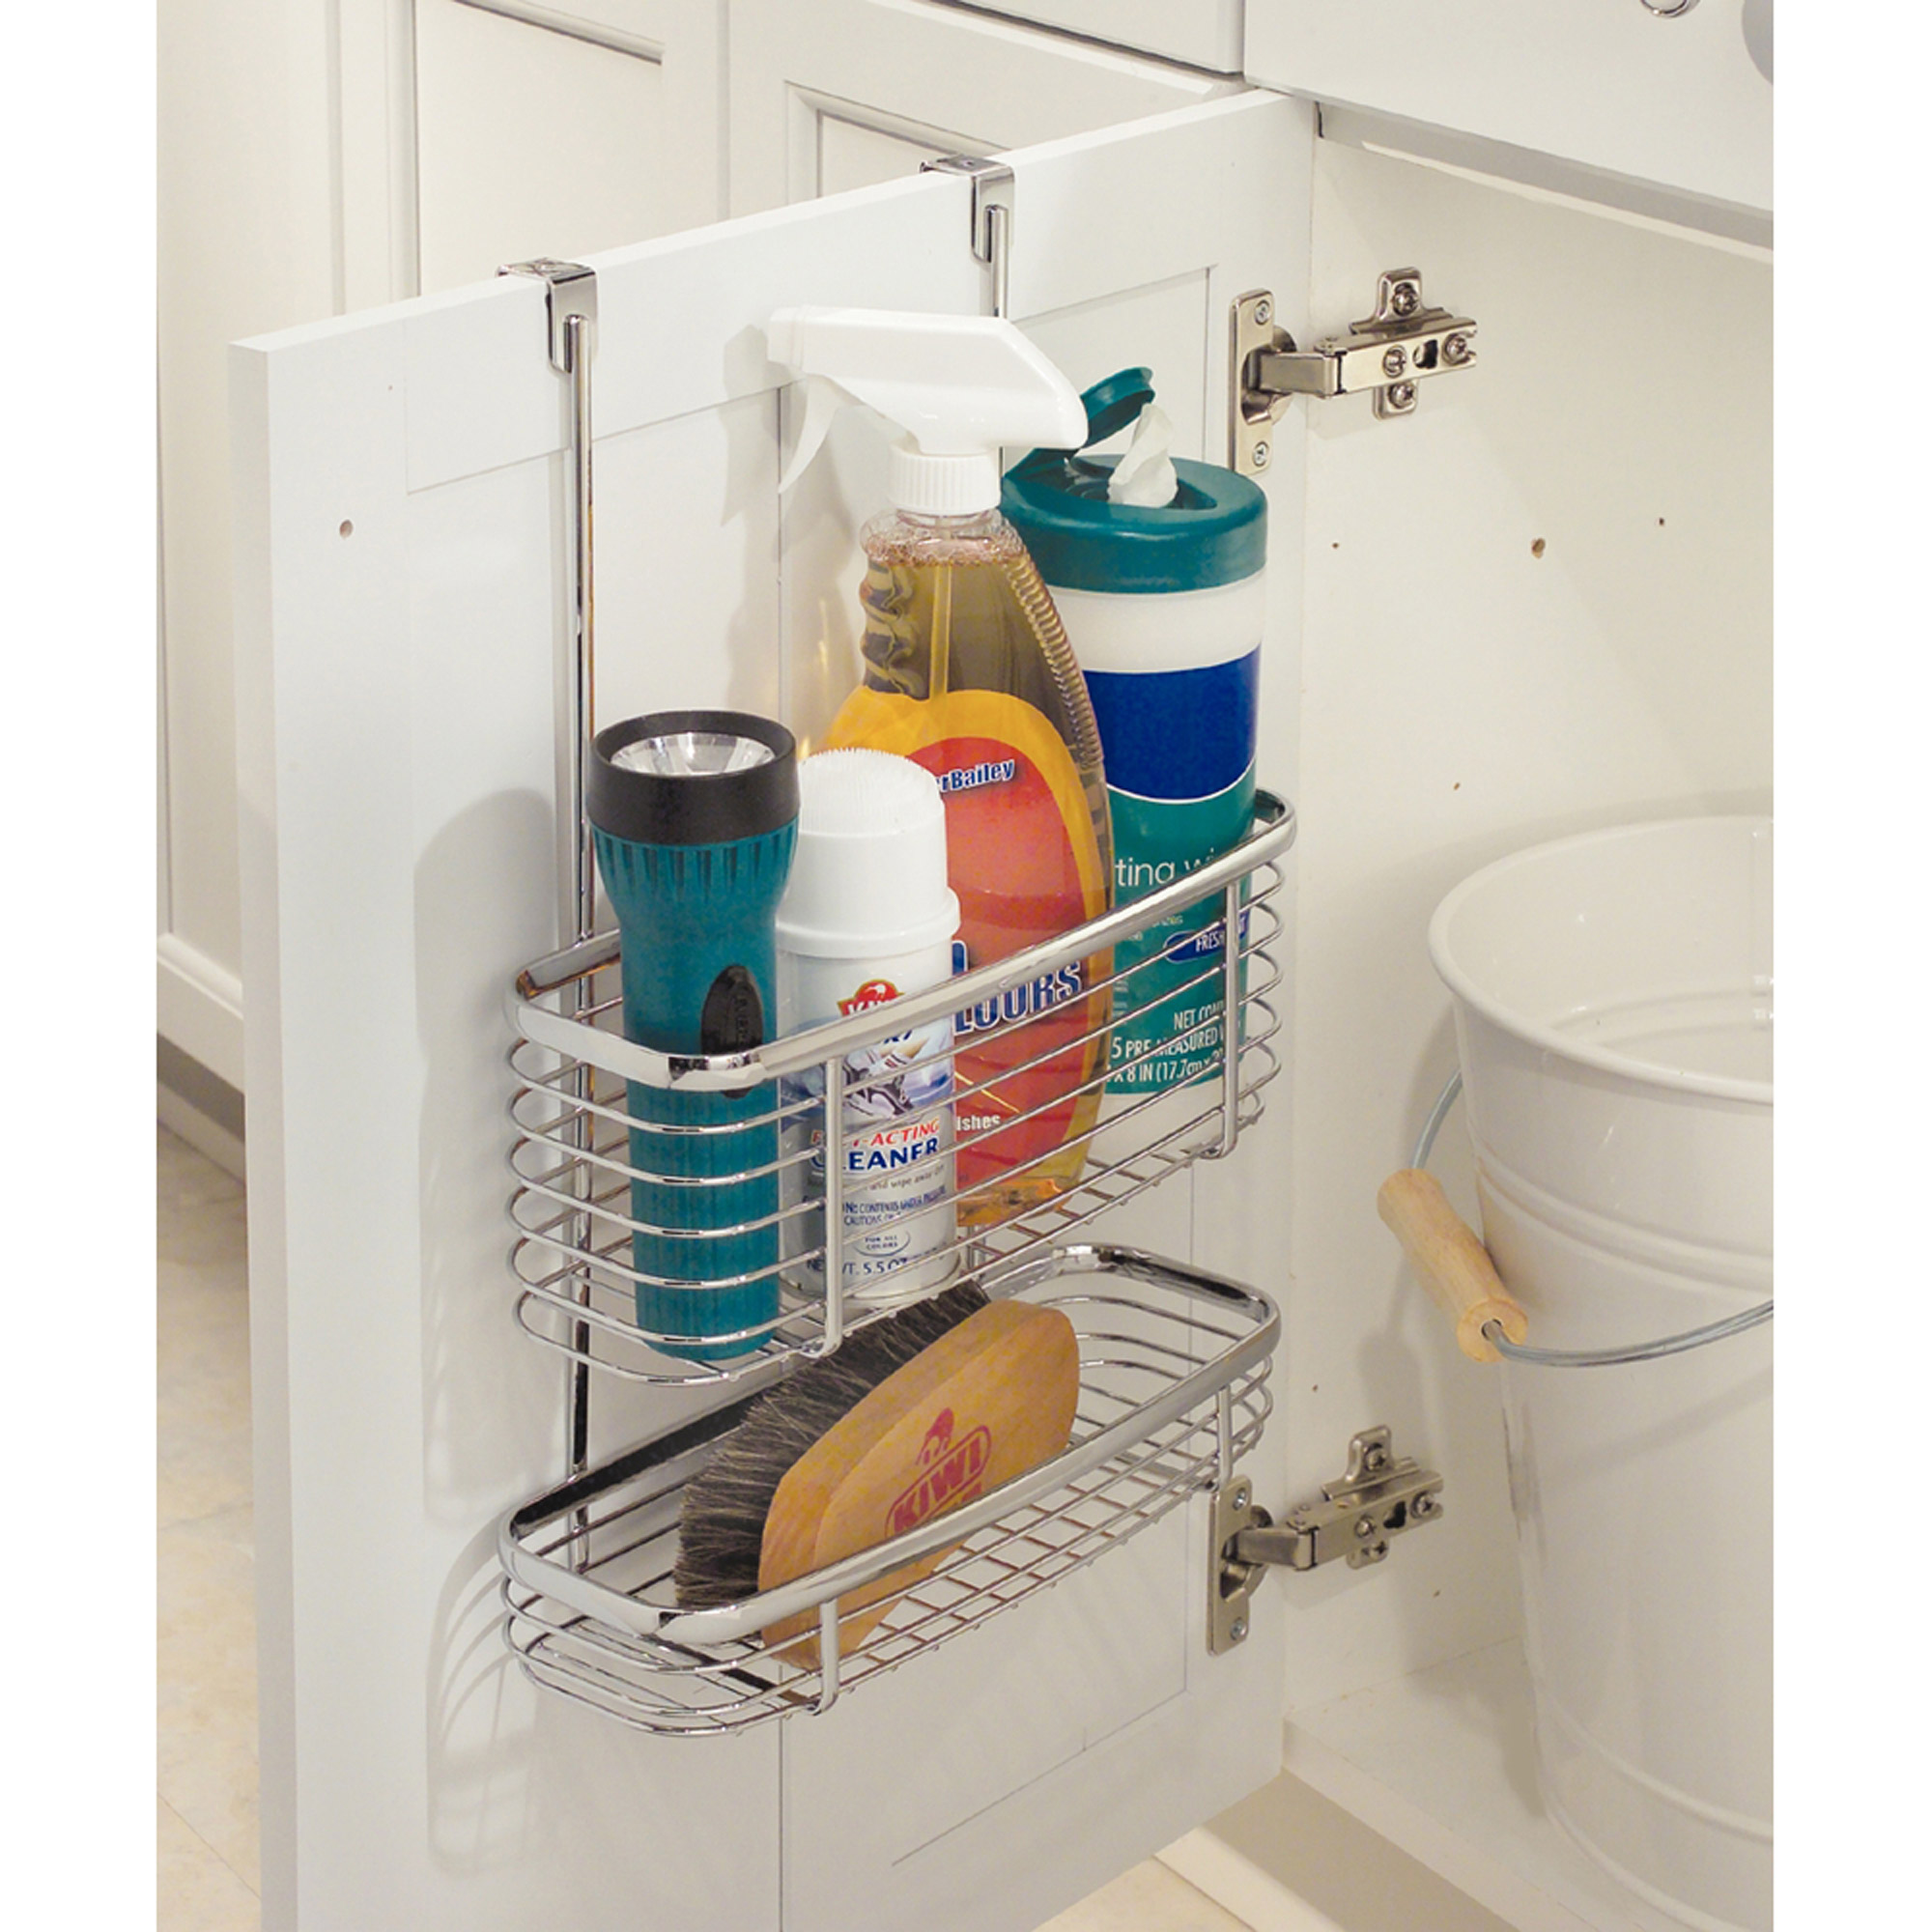 check out 7 best over the door storage rh chooseoutdoorkitchens com over the cabinet bathroom organizer over the cabinet door organizer holder